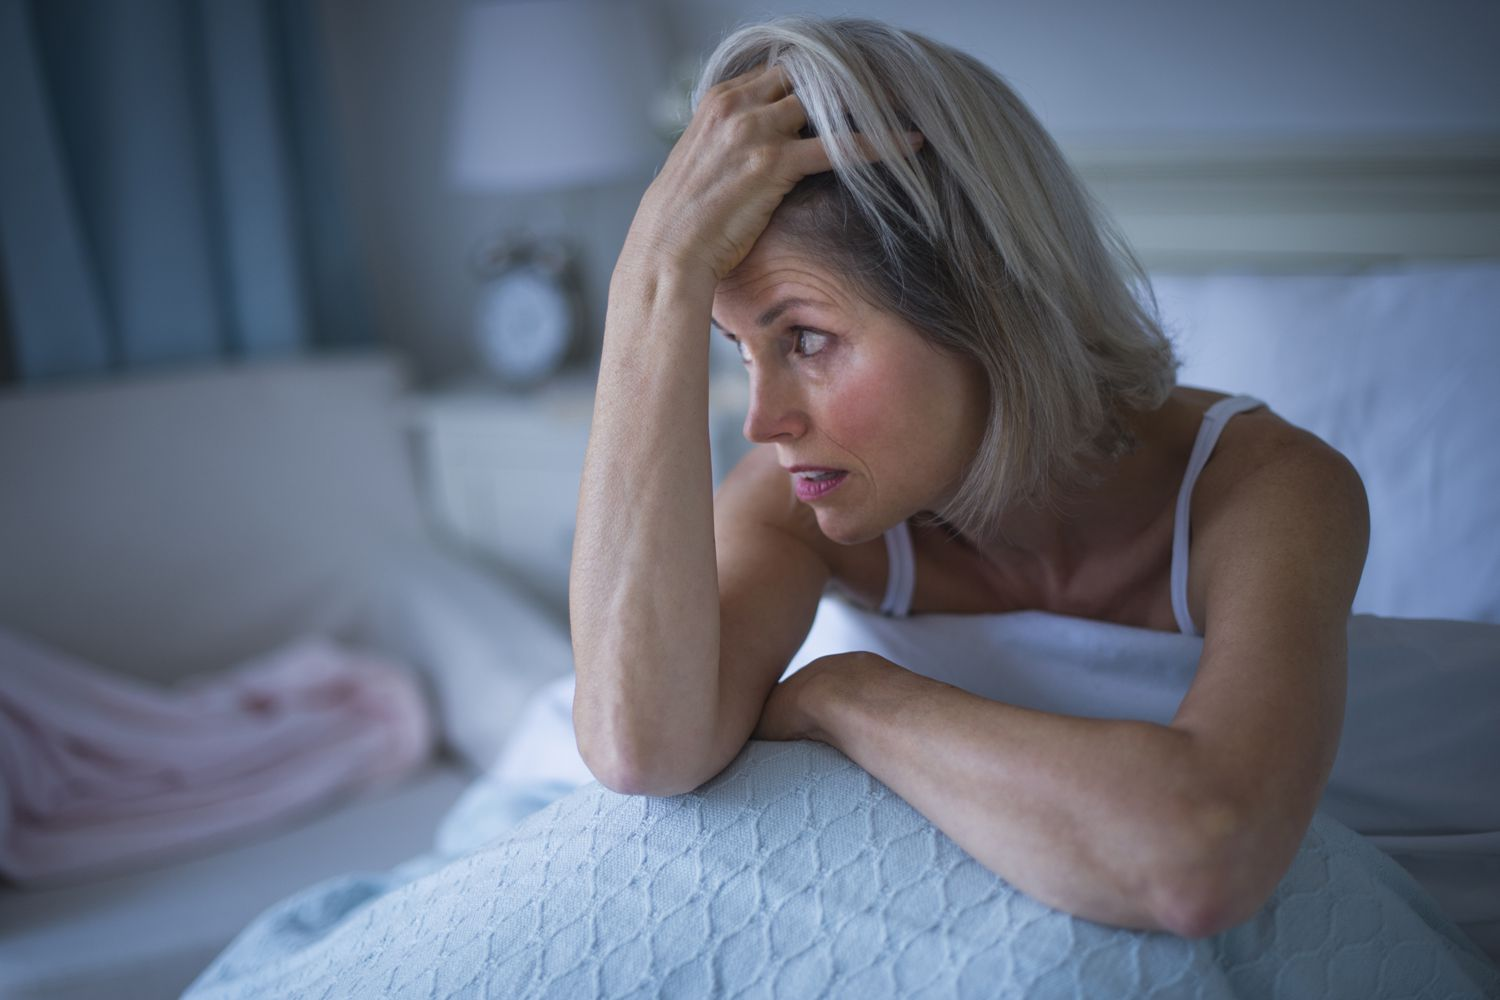 A woman dealing with insomnia in bed